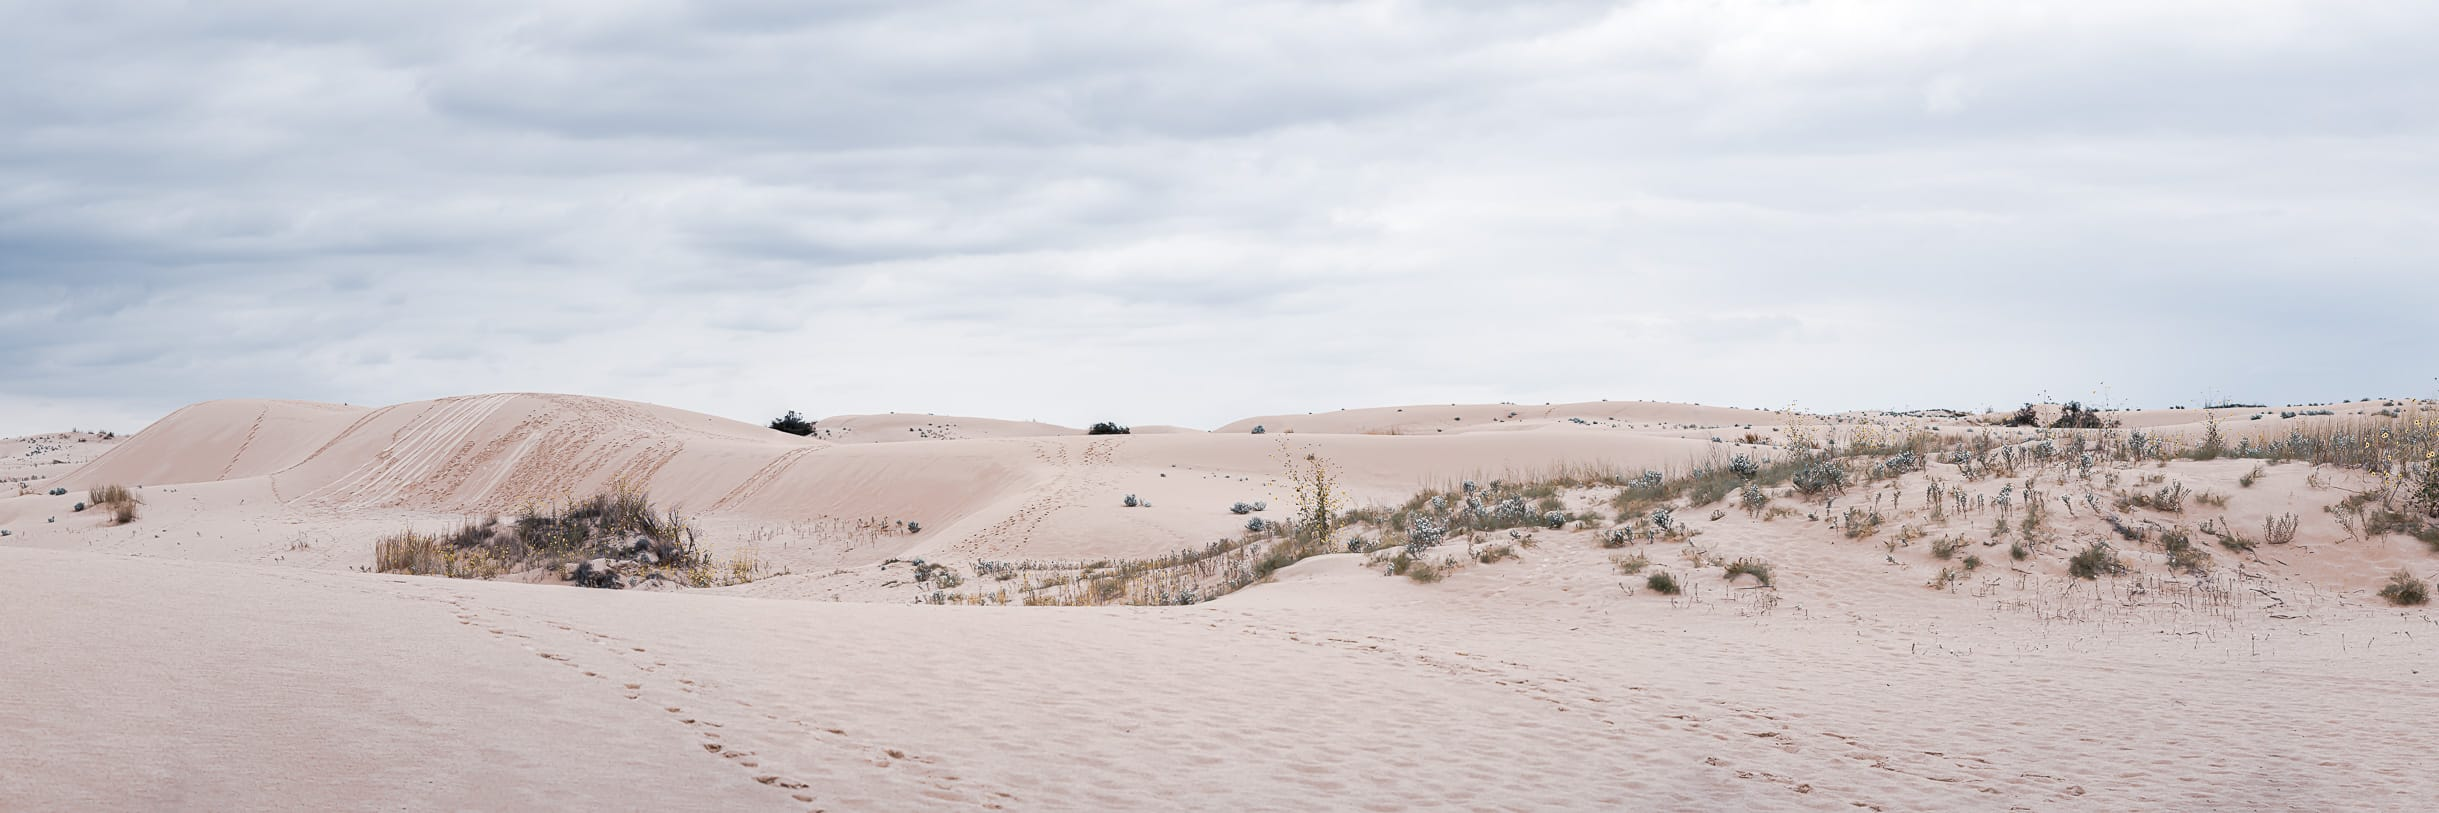 Sand dunes stretch into the distance at Texas' Monahans Sandhills State Park.